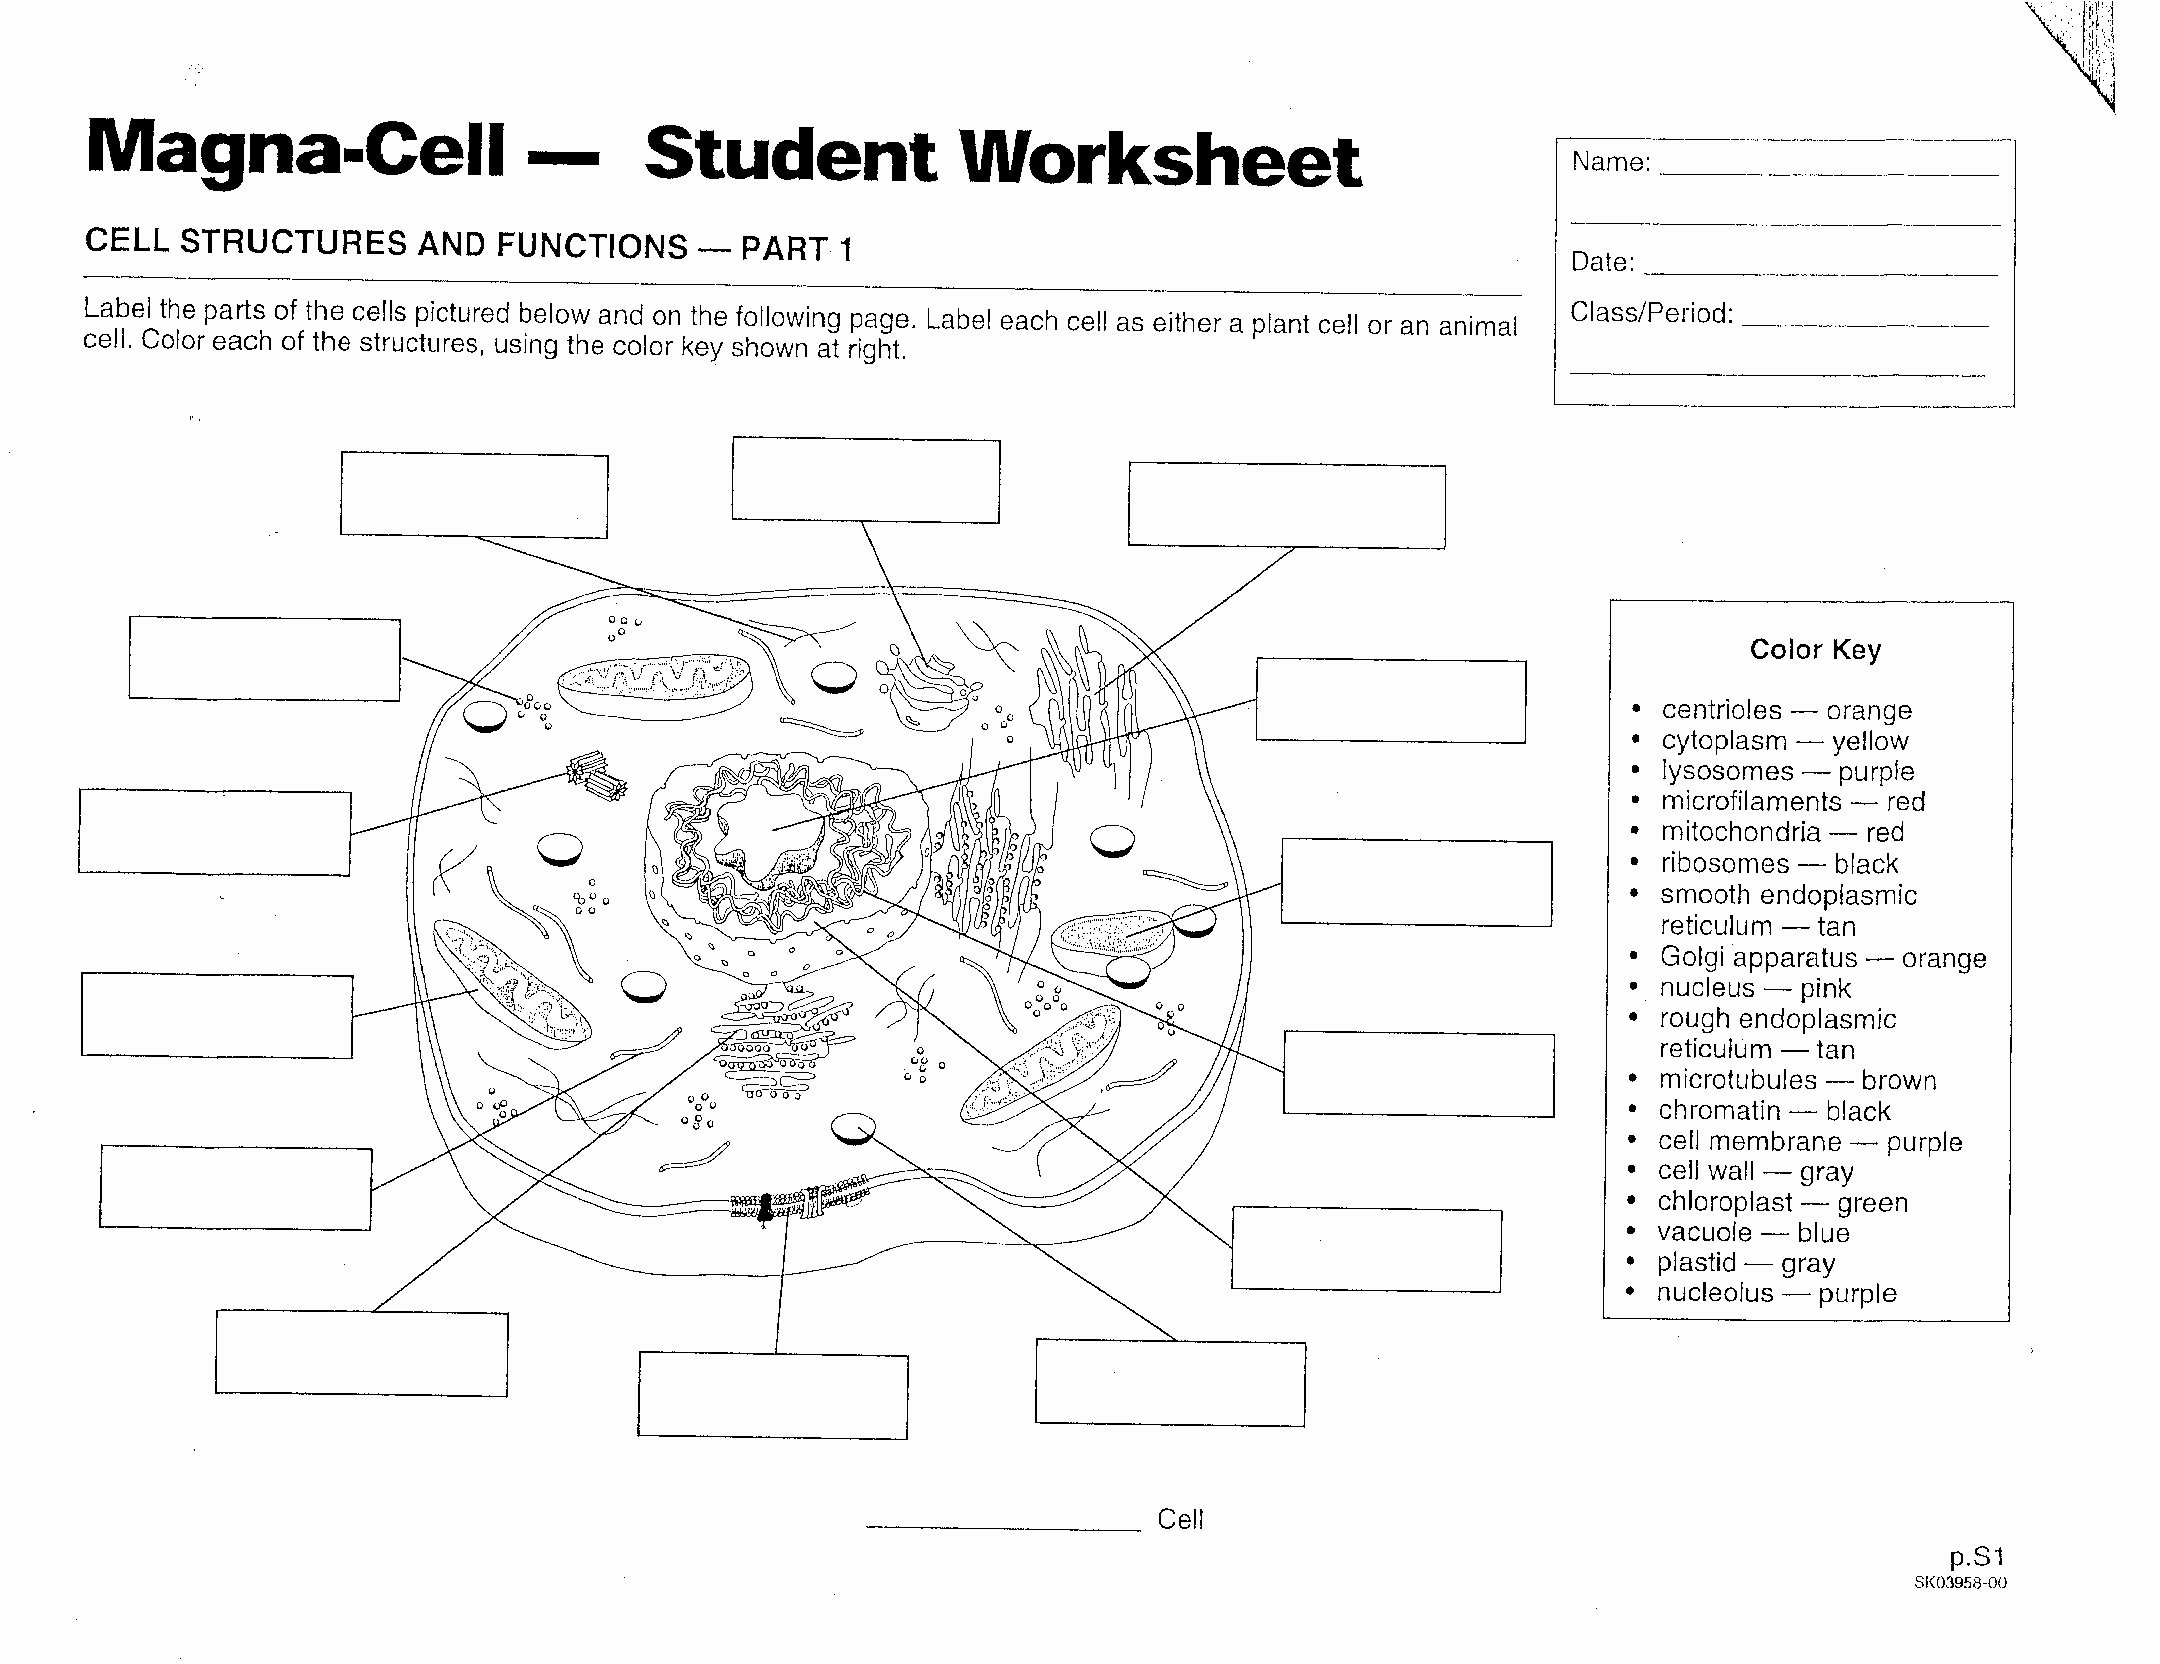 Animal and Plant Cells Worksheet Lovely Cells Mrs Musto 7th Grade Life Science